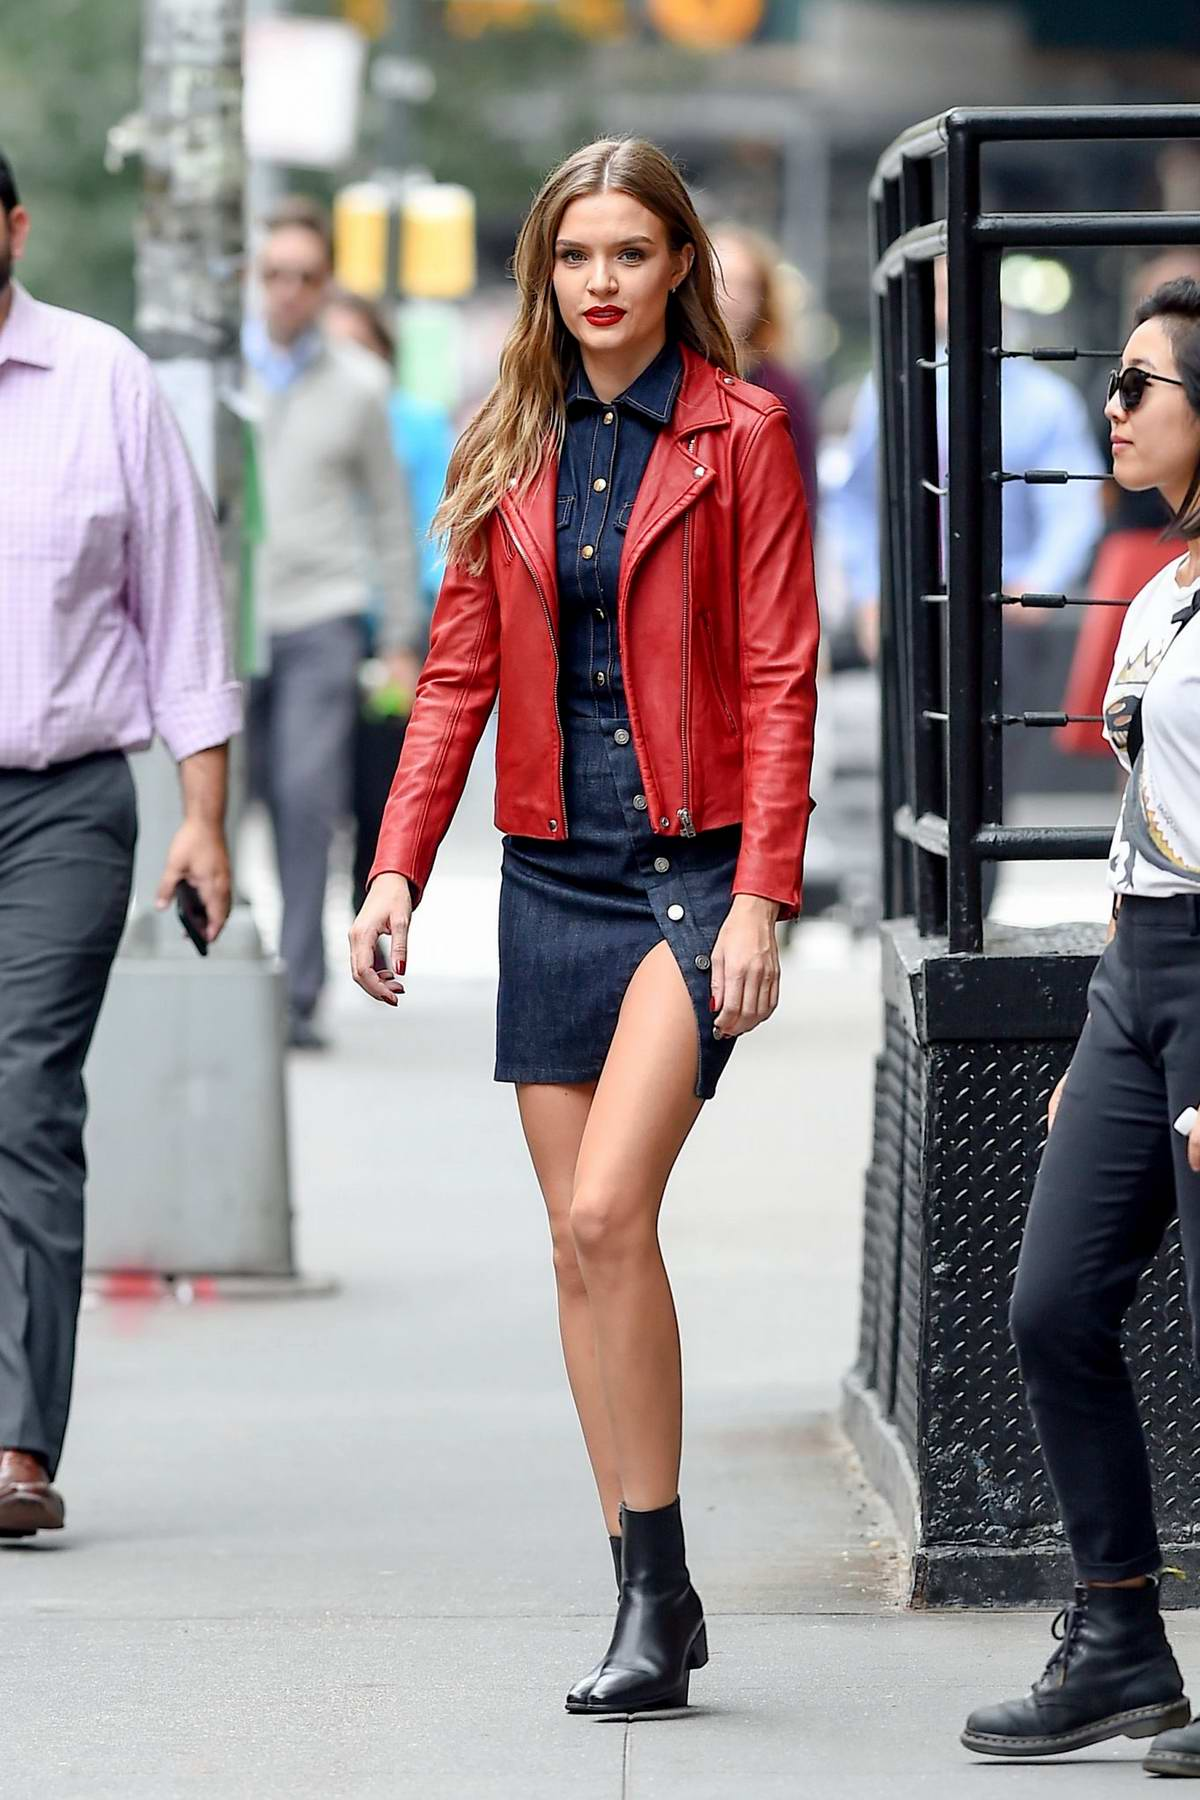 Josephine Skriver wearing a red leather jacket with a ...